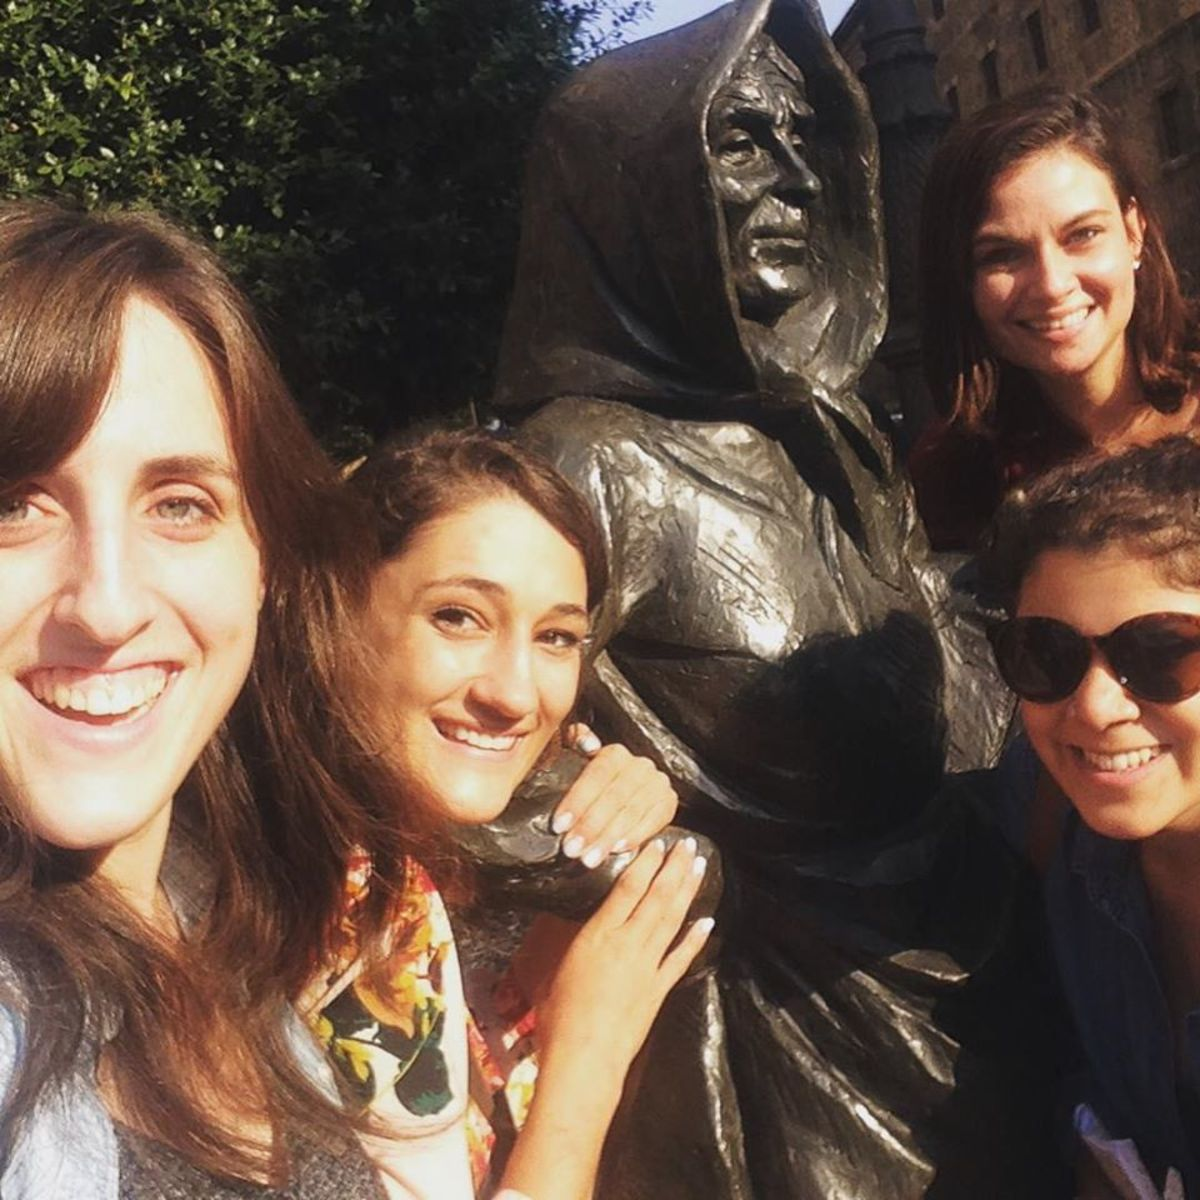 Therese and friends with La Gitana, one of the many sculptures dotting the streets inOviedo, Spain.